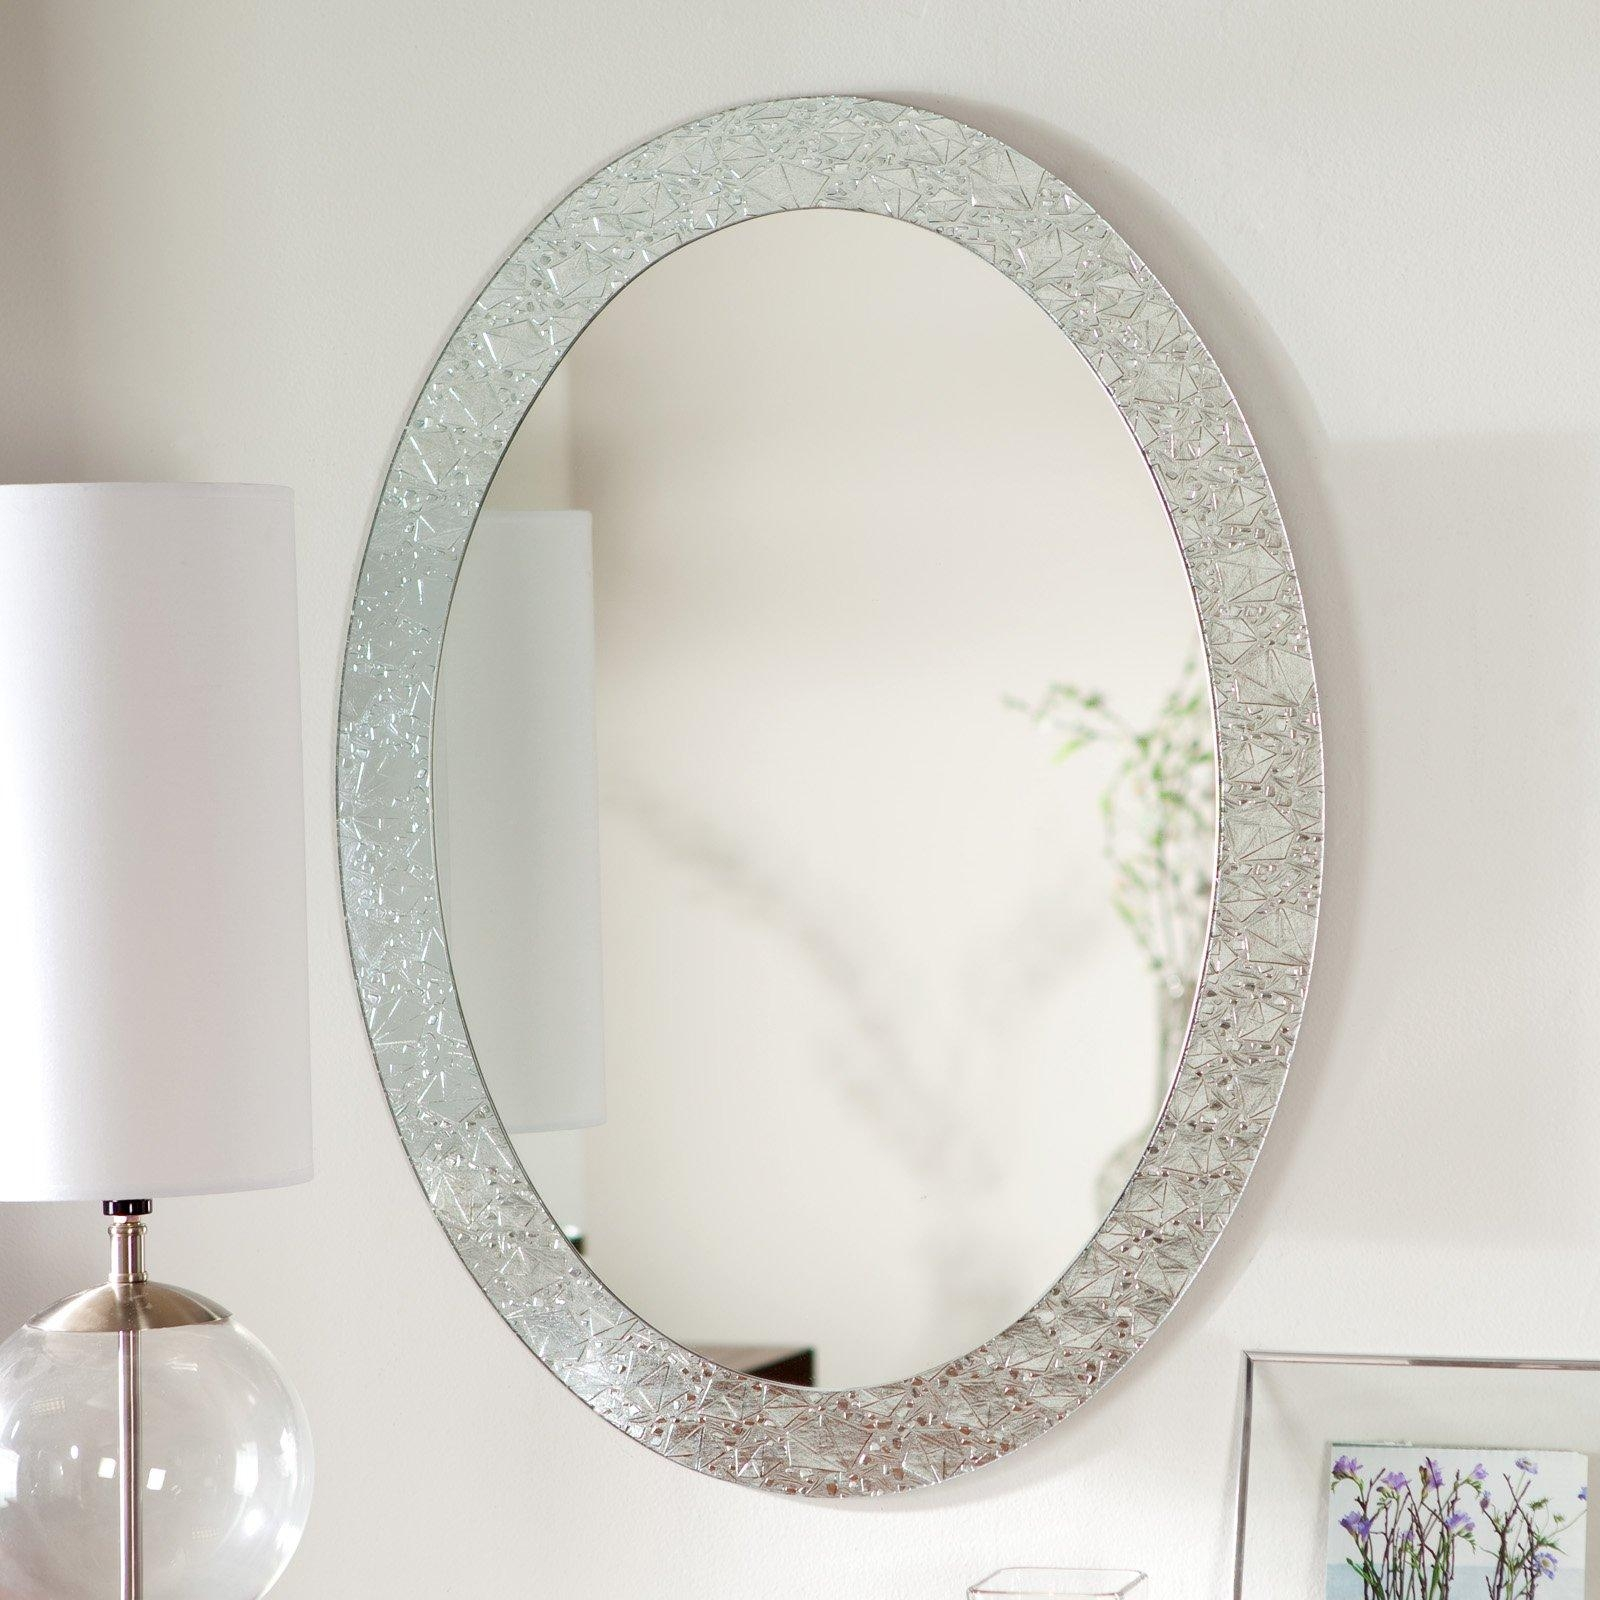 Bathroom Cabinets : Best Images About Mirrors On Pinterest Oval For Oval Bath Mirrors (View 7 of 20)